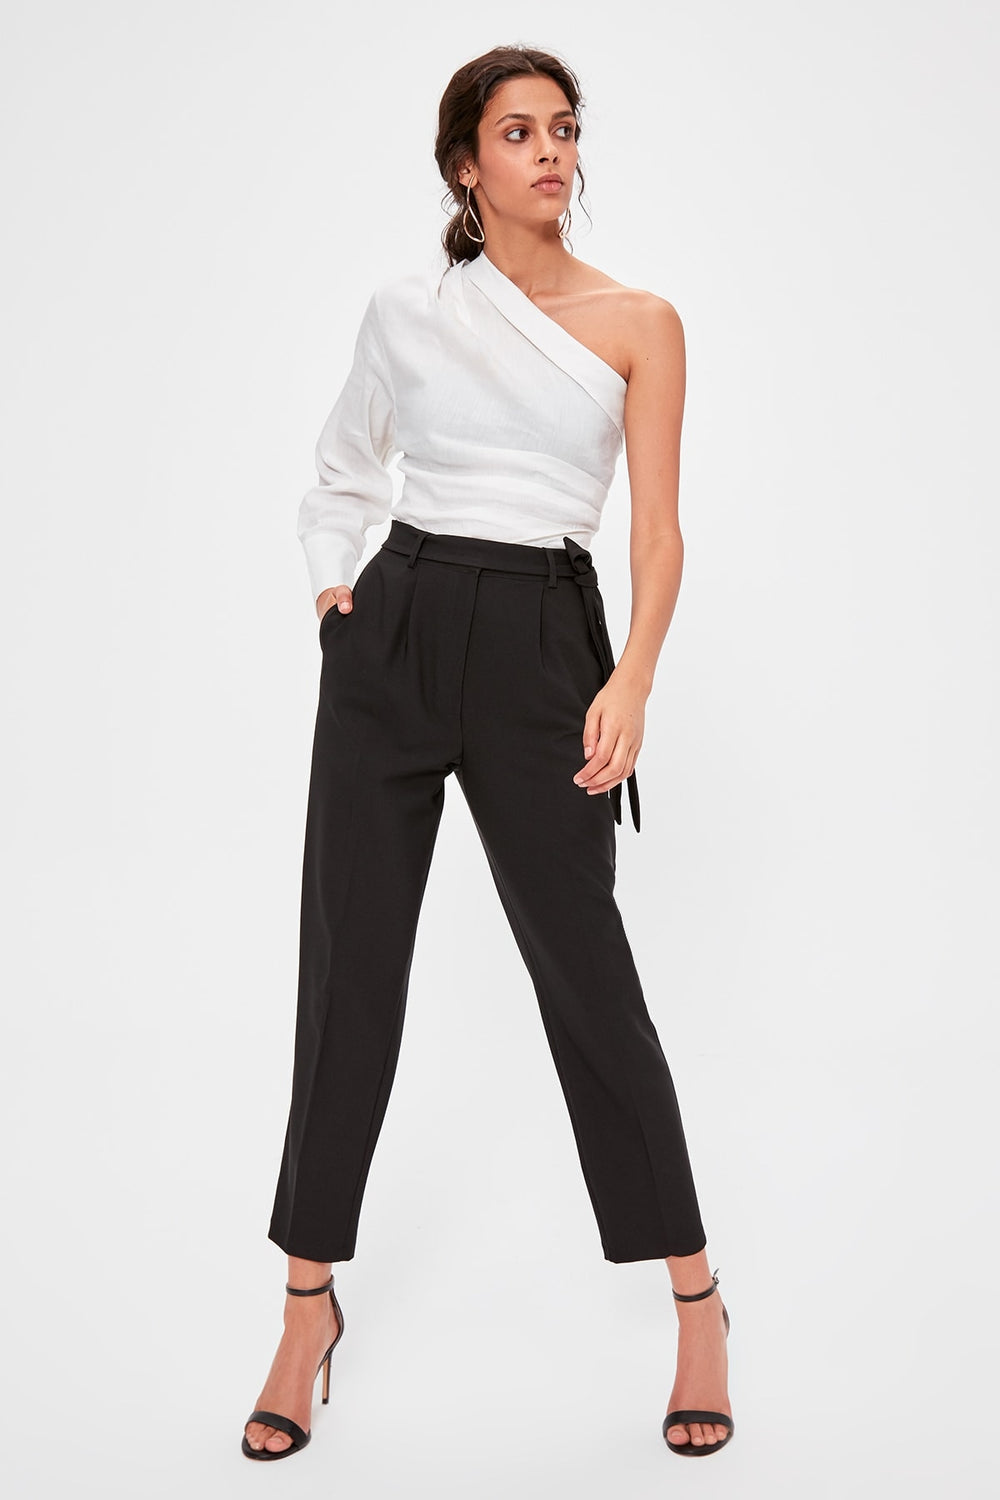 Miss Zut Miss Zut Black Carrot Pants Miss Zut &CO